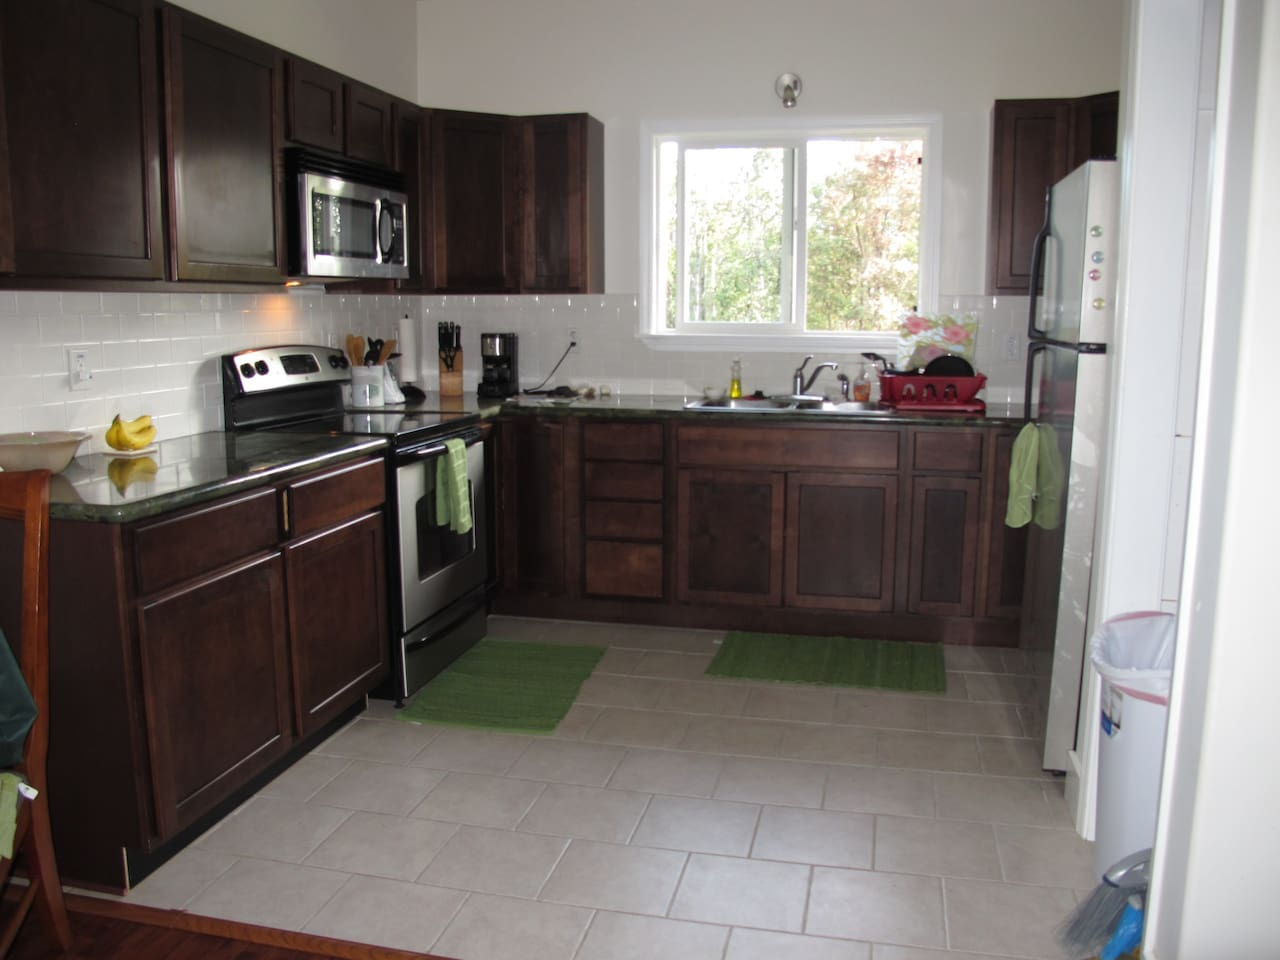 Kitchen in 2 bedroom house